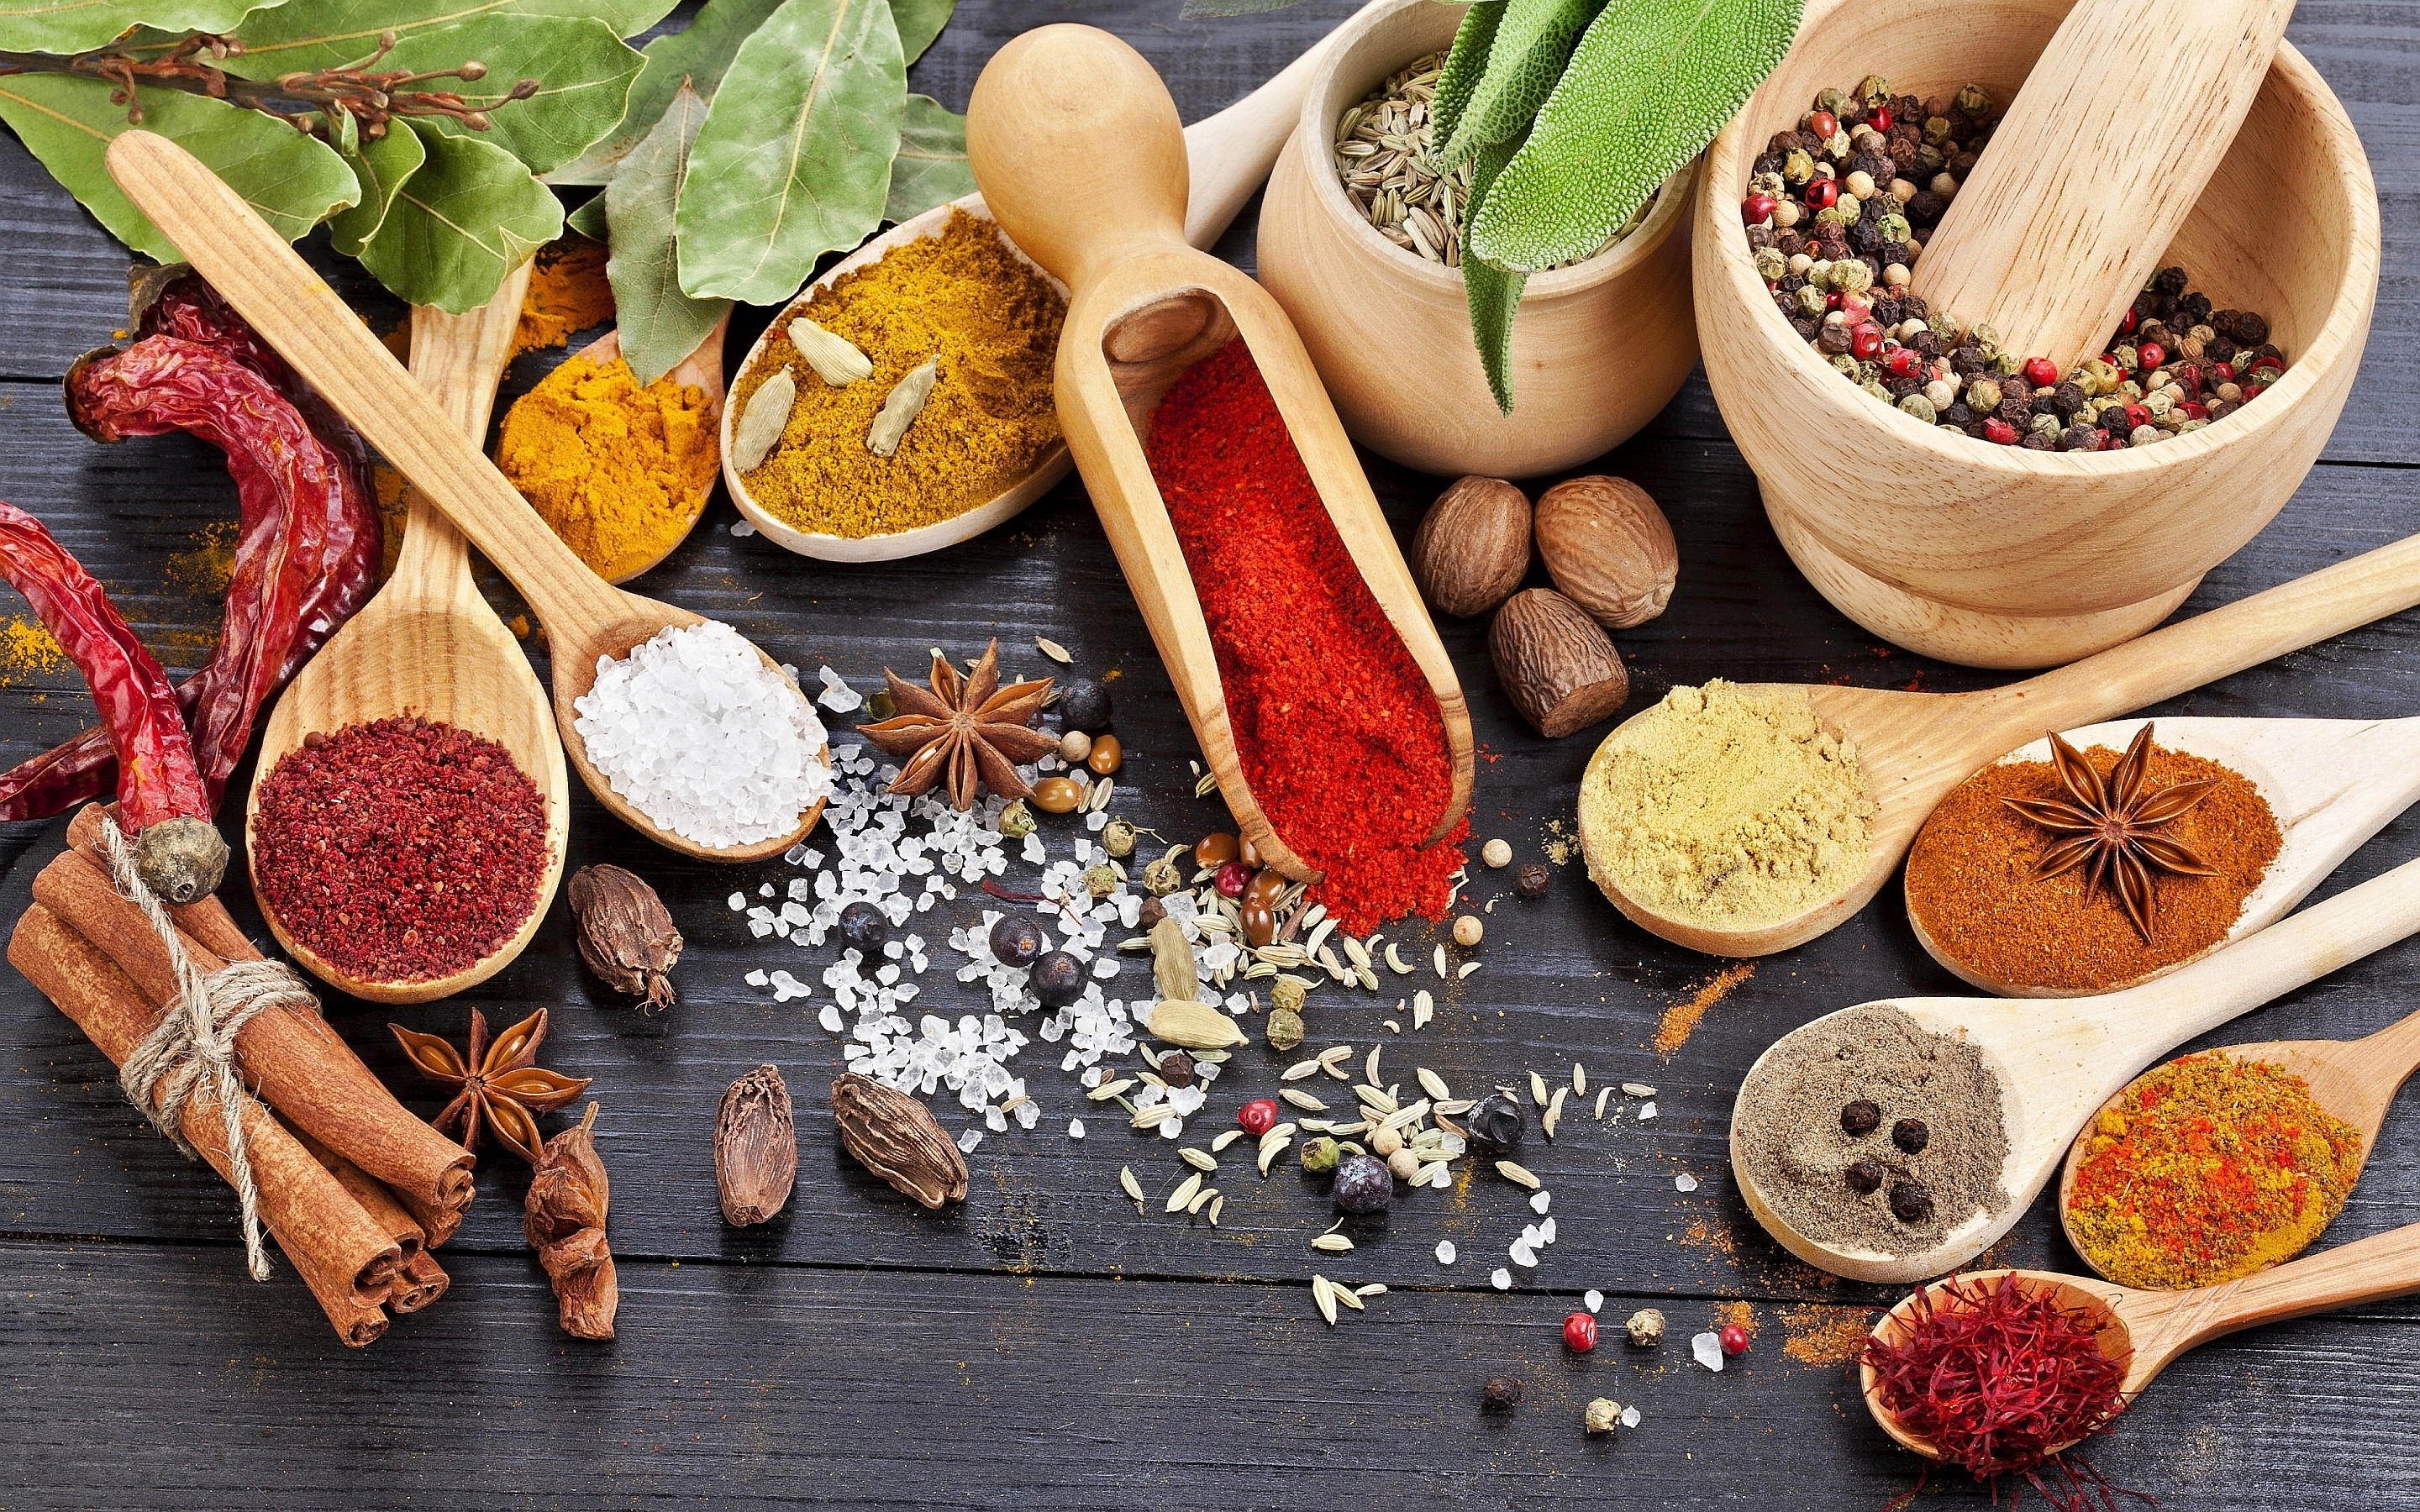 High Resolution Wallpaper | Herbs And Spices 2880x1800 px